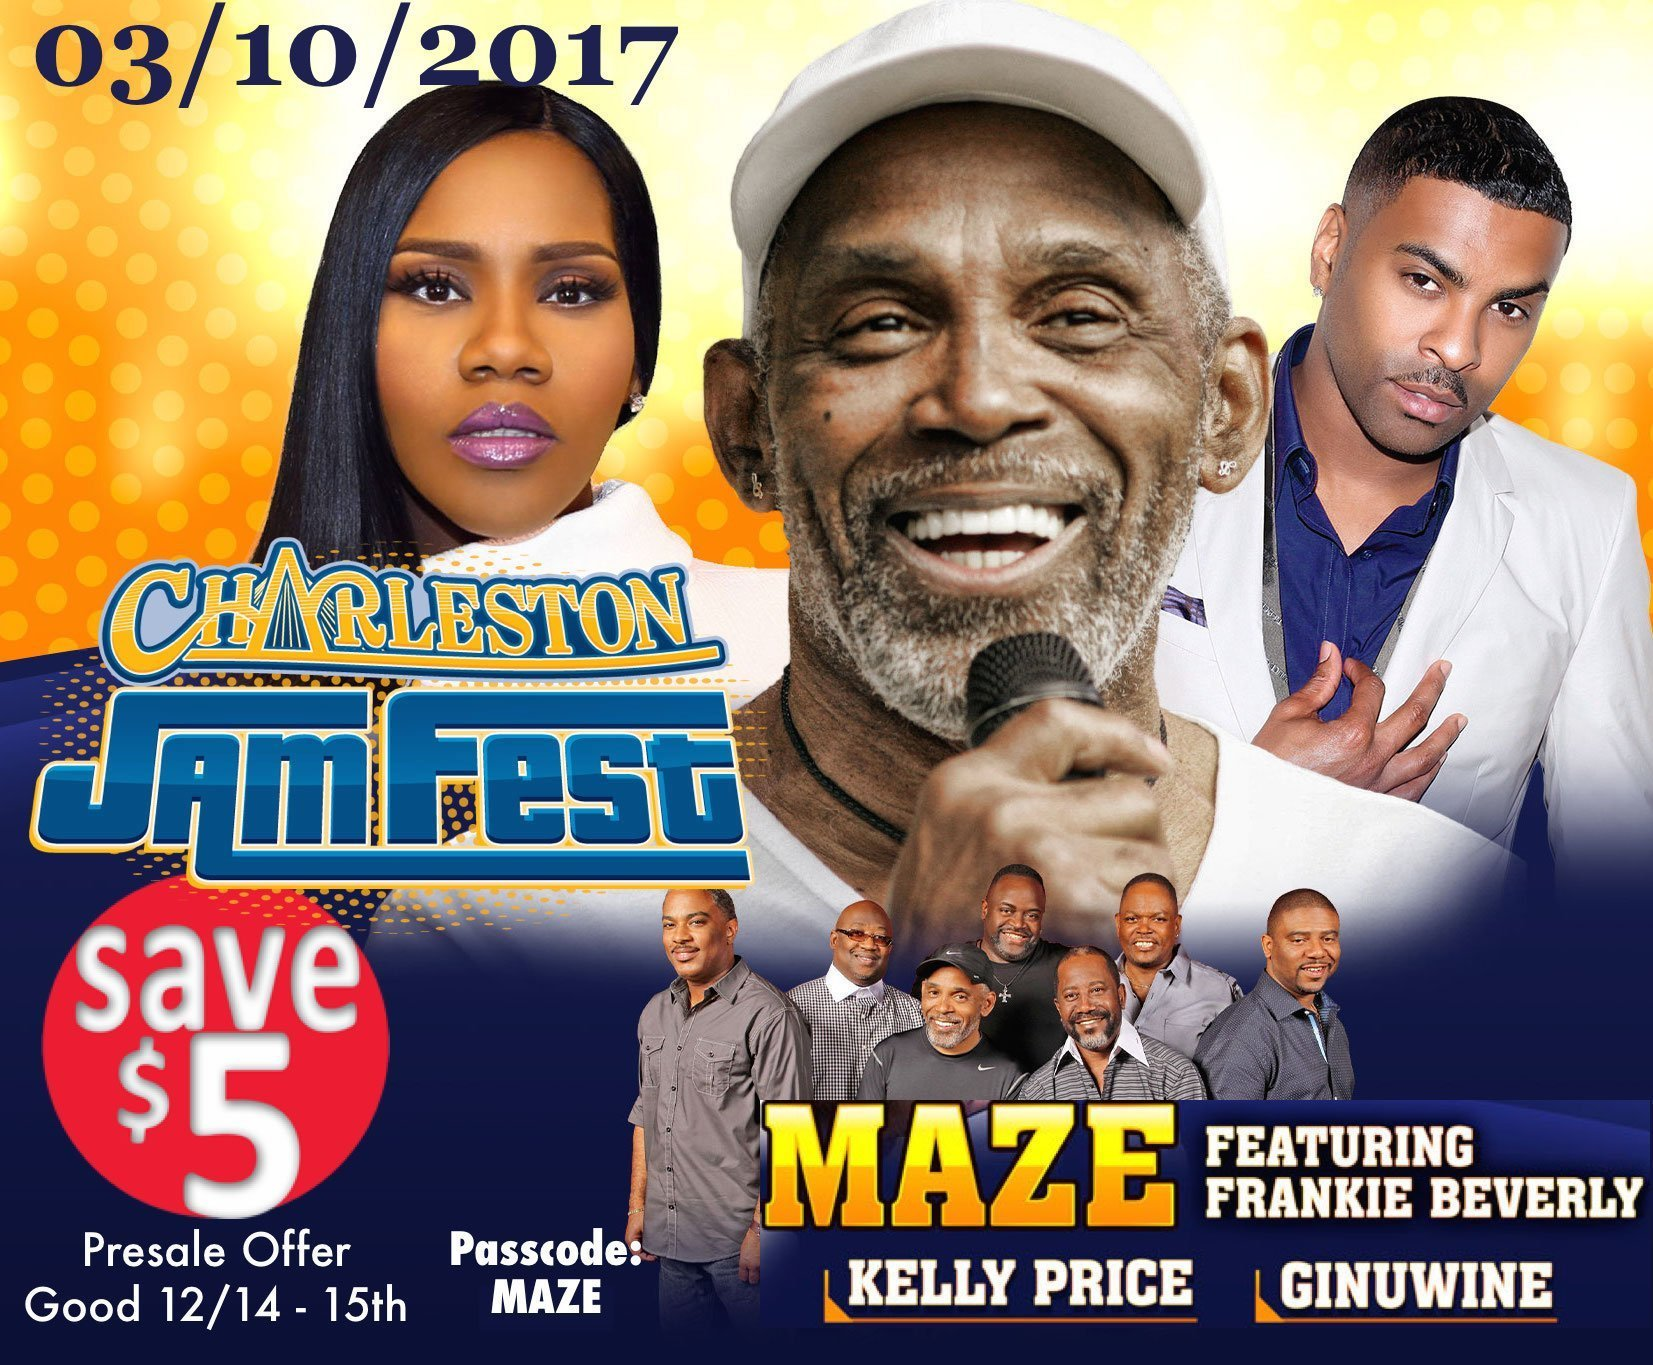 image for event Charleston Jam Fest: Frankie Beverly, Maze, Ginuwine and more